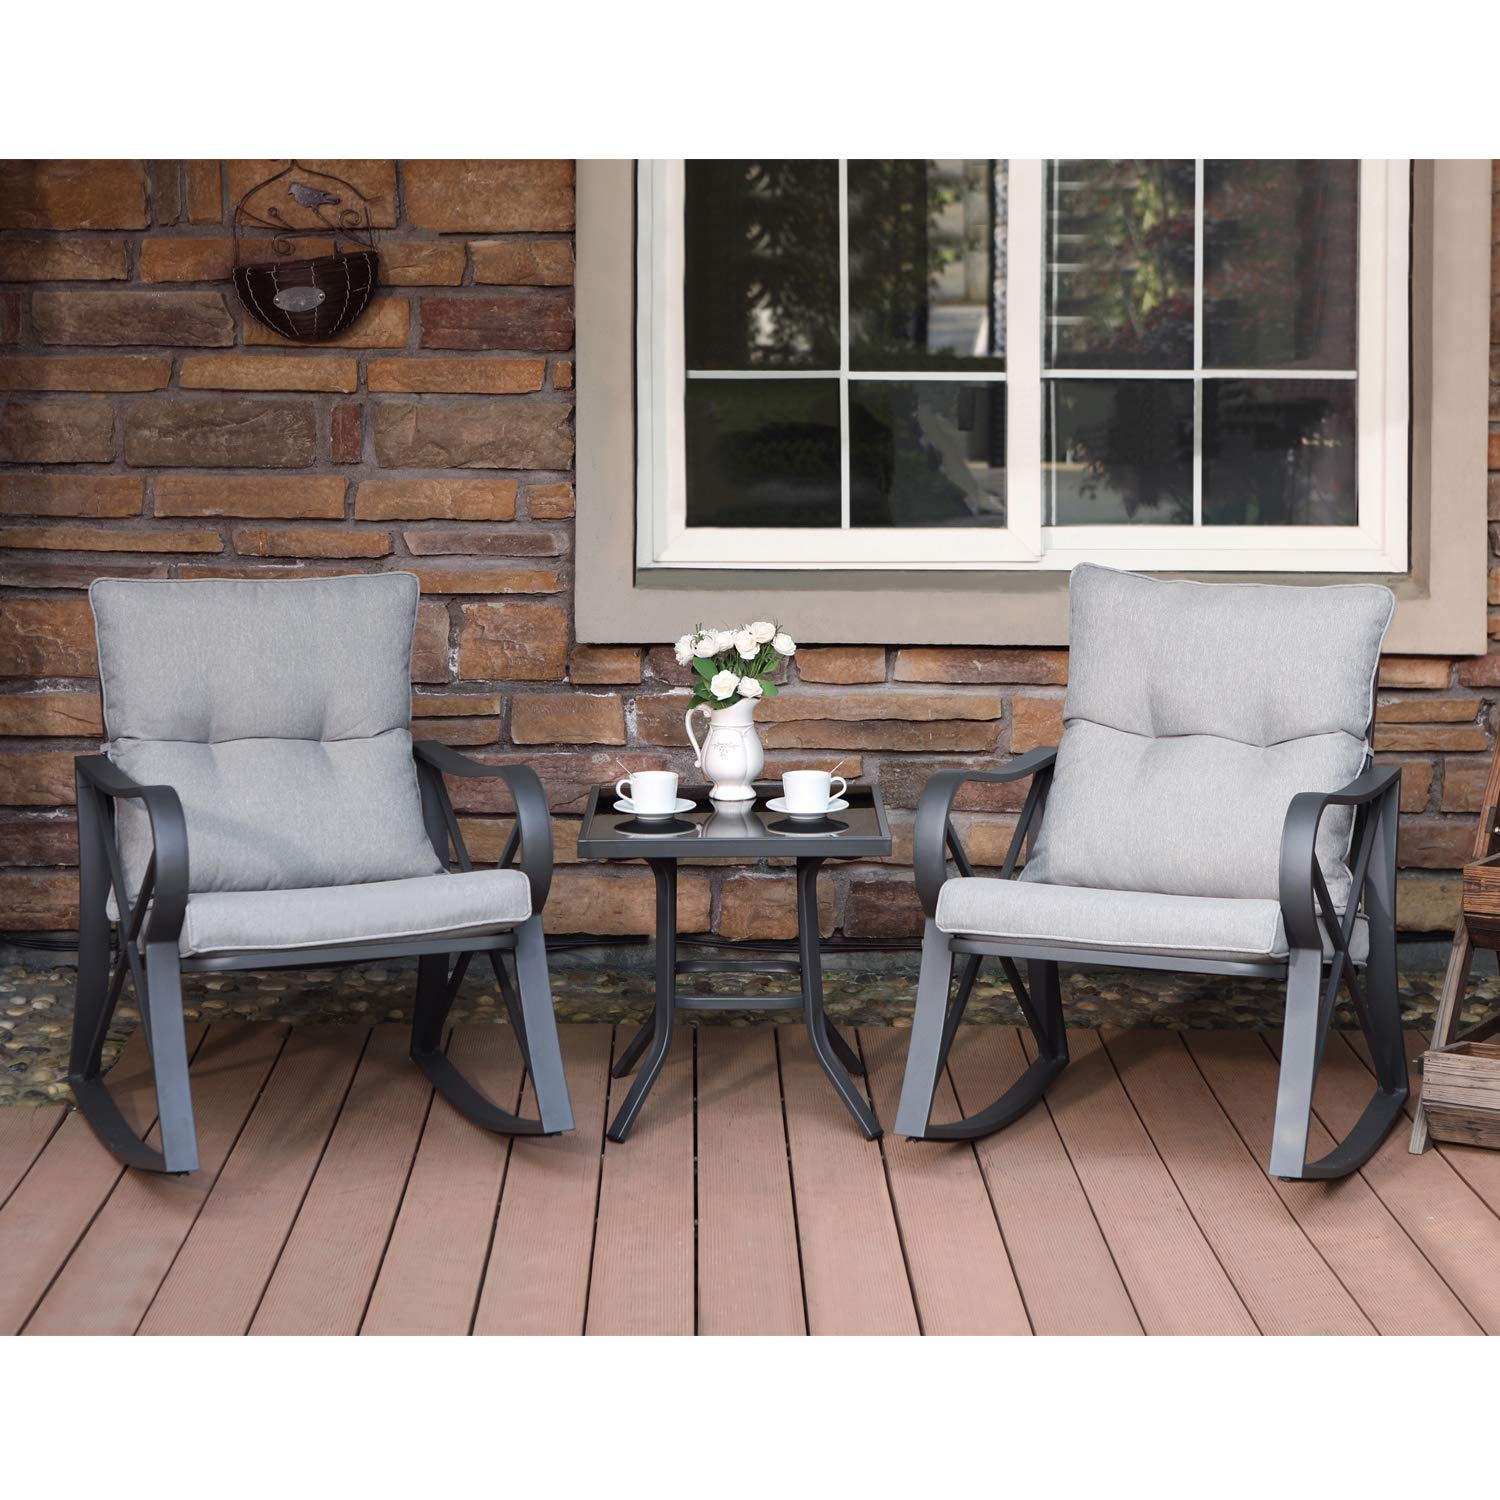 COSIEST 3-Piece Outdoor Patio Furniture Dark Gray Rocking Chairs Bistro Set w Warm Gray Cushions, Glass-Top Table for Garden, Pool, Backyard